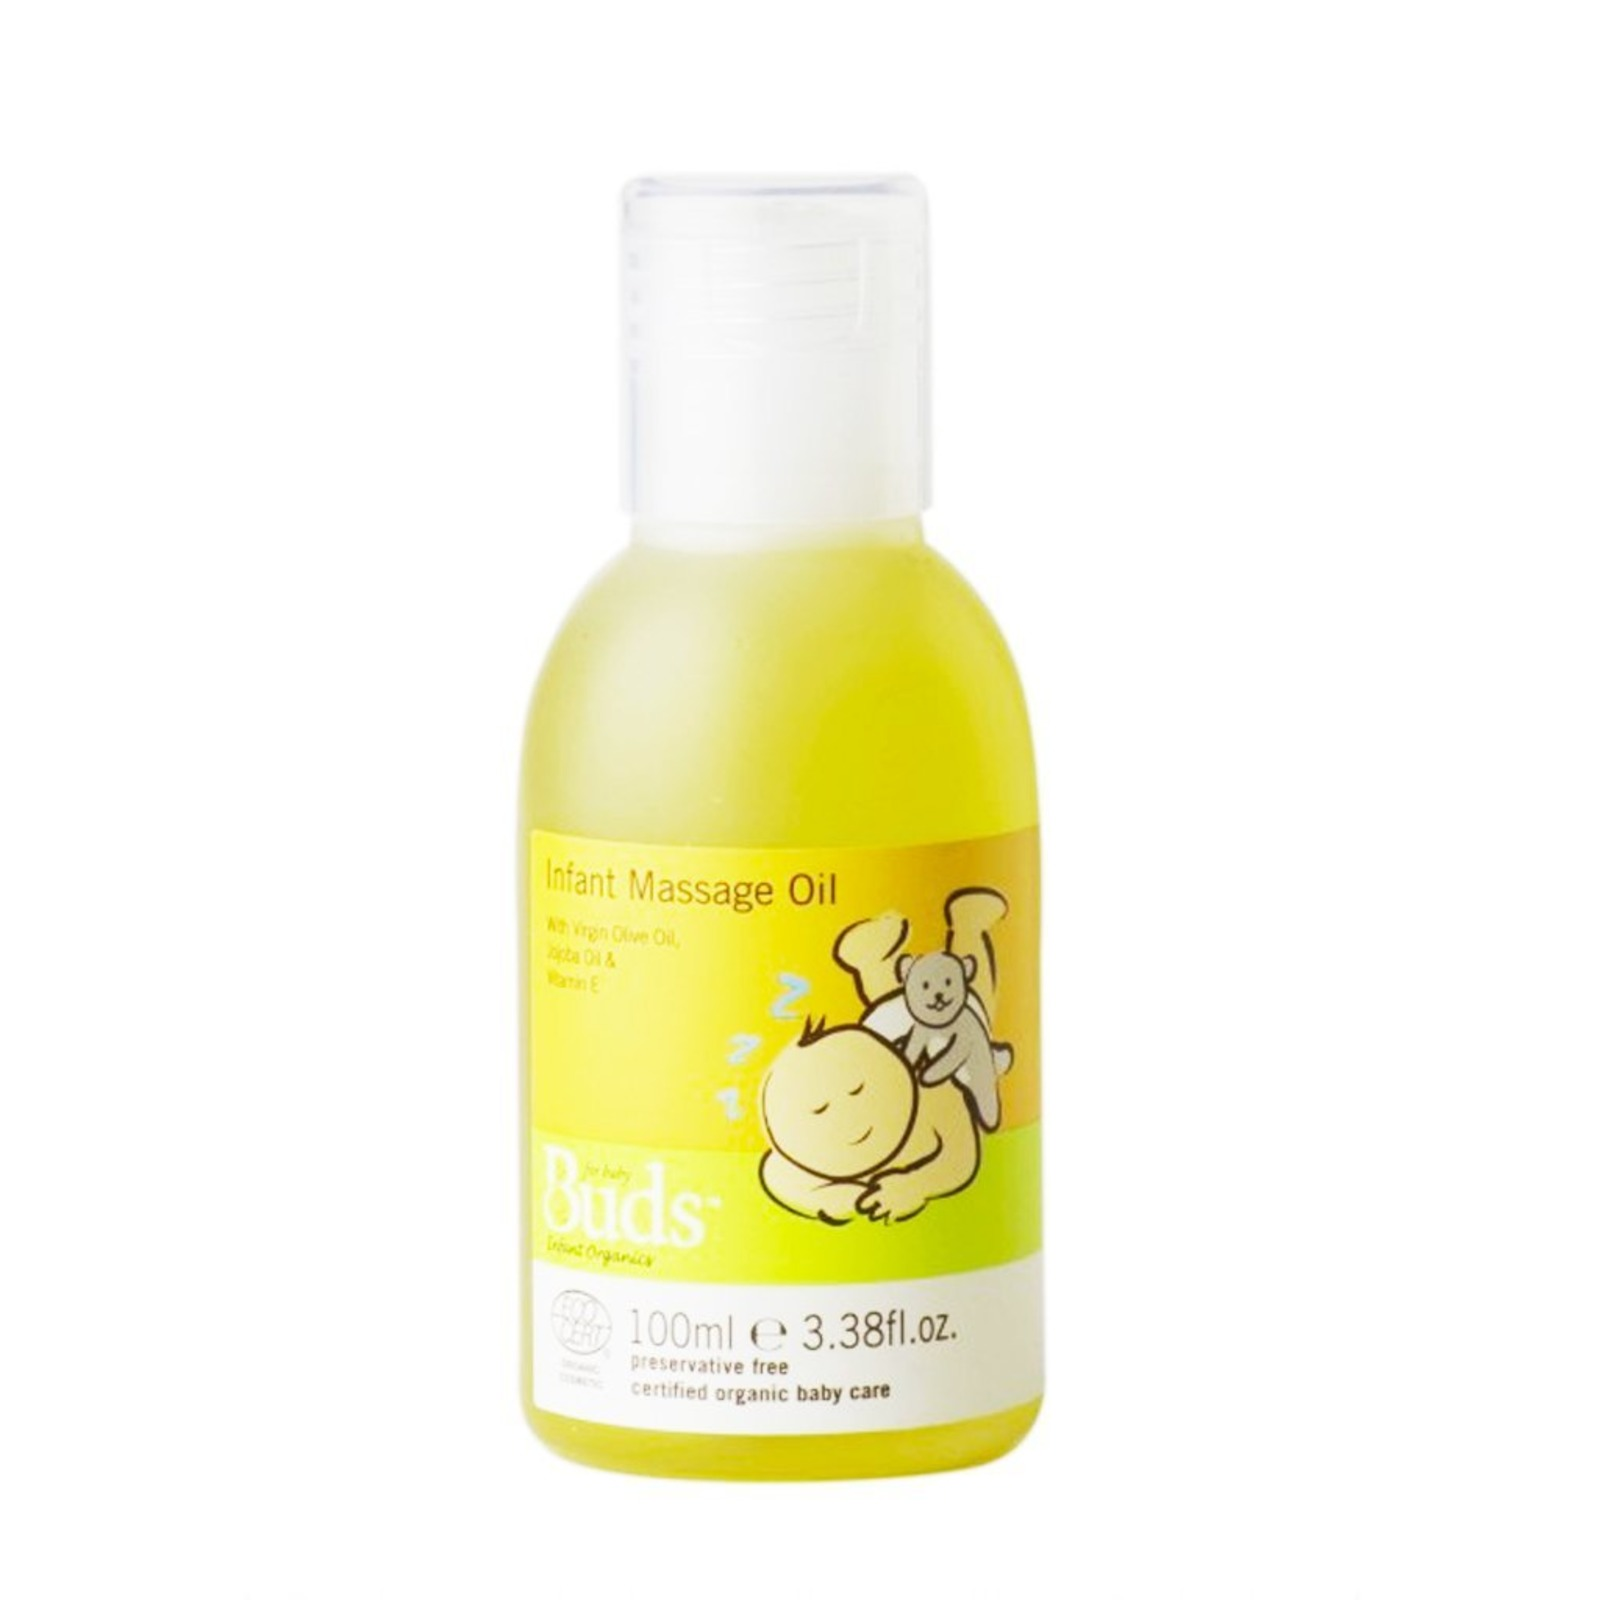 Buds Organics BEO Infant Massage Oil